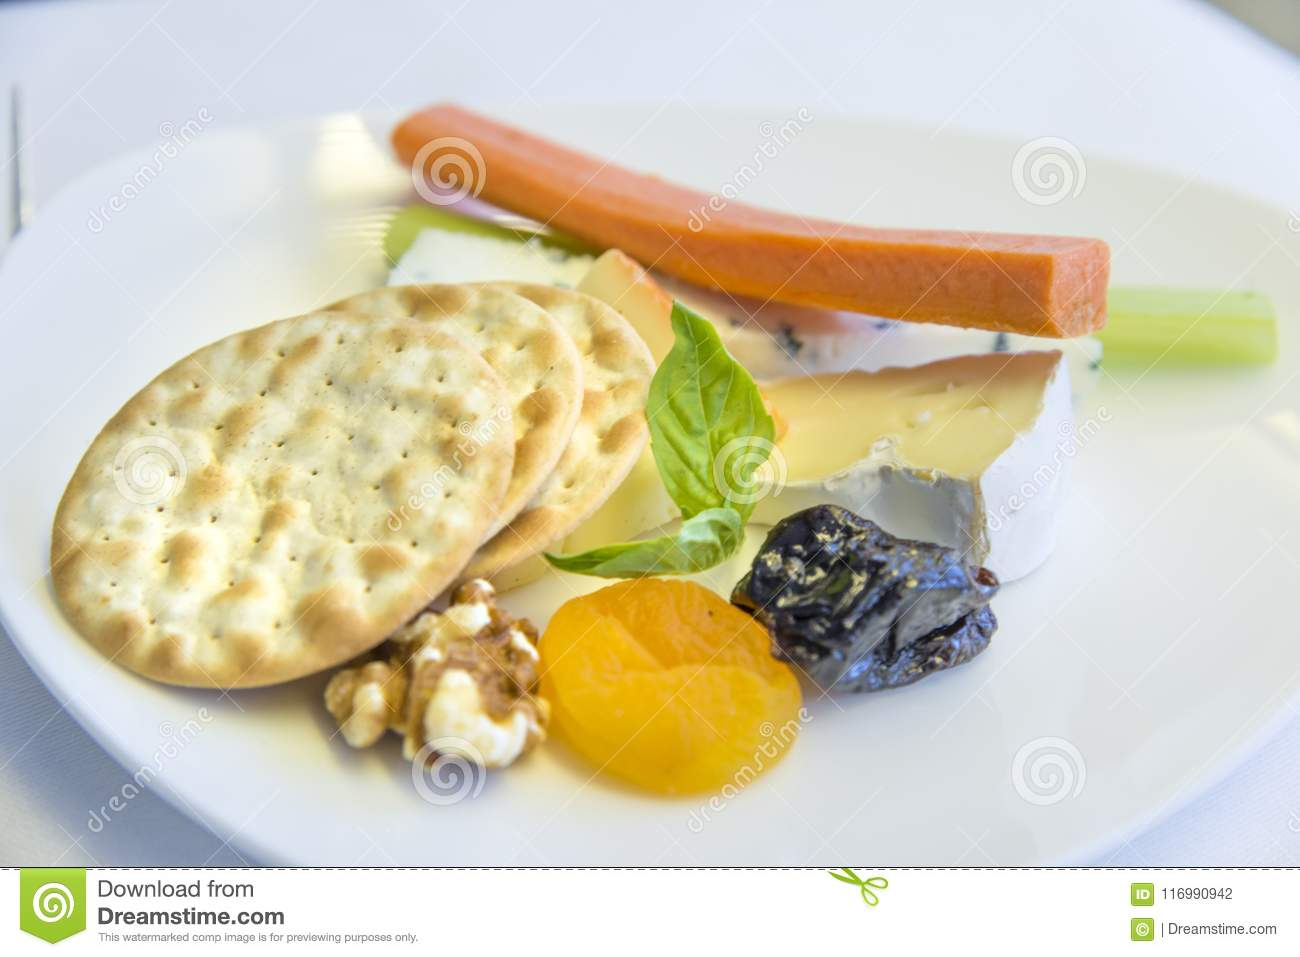 Set inflight meal appetizer on a tray, on a white table